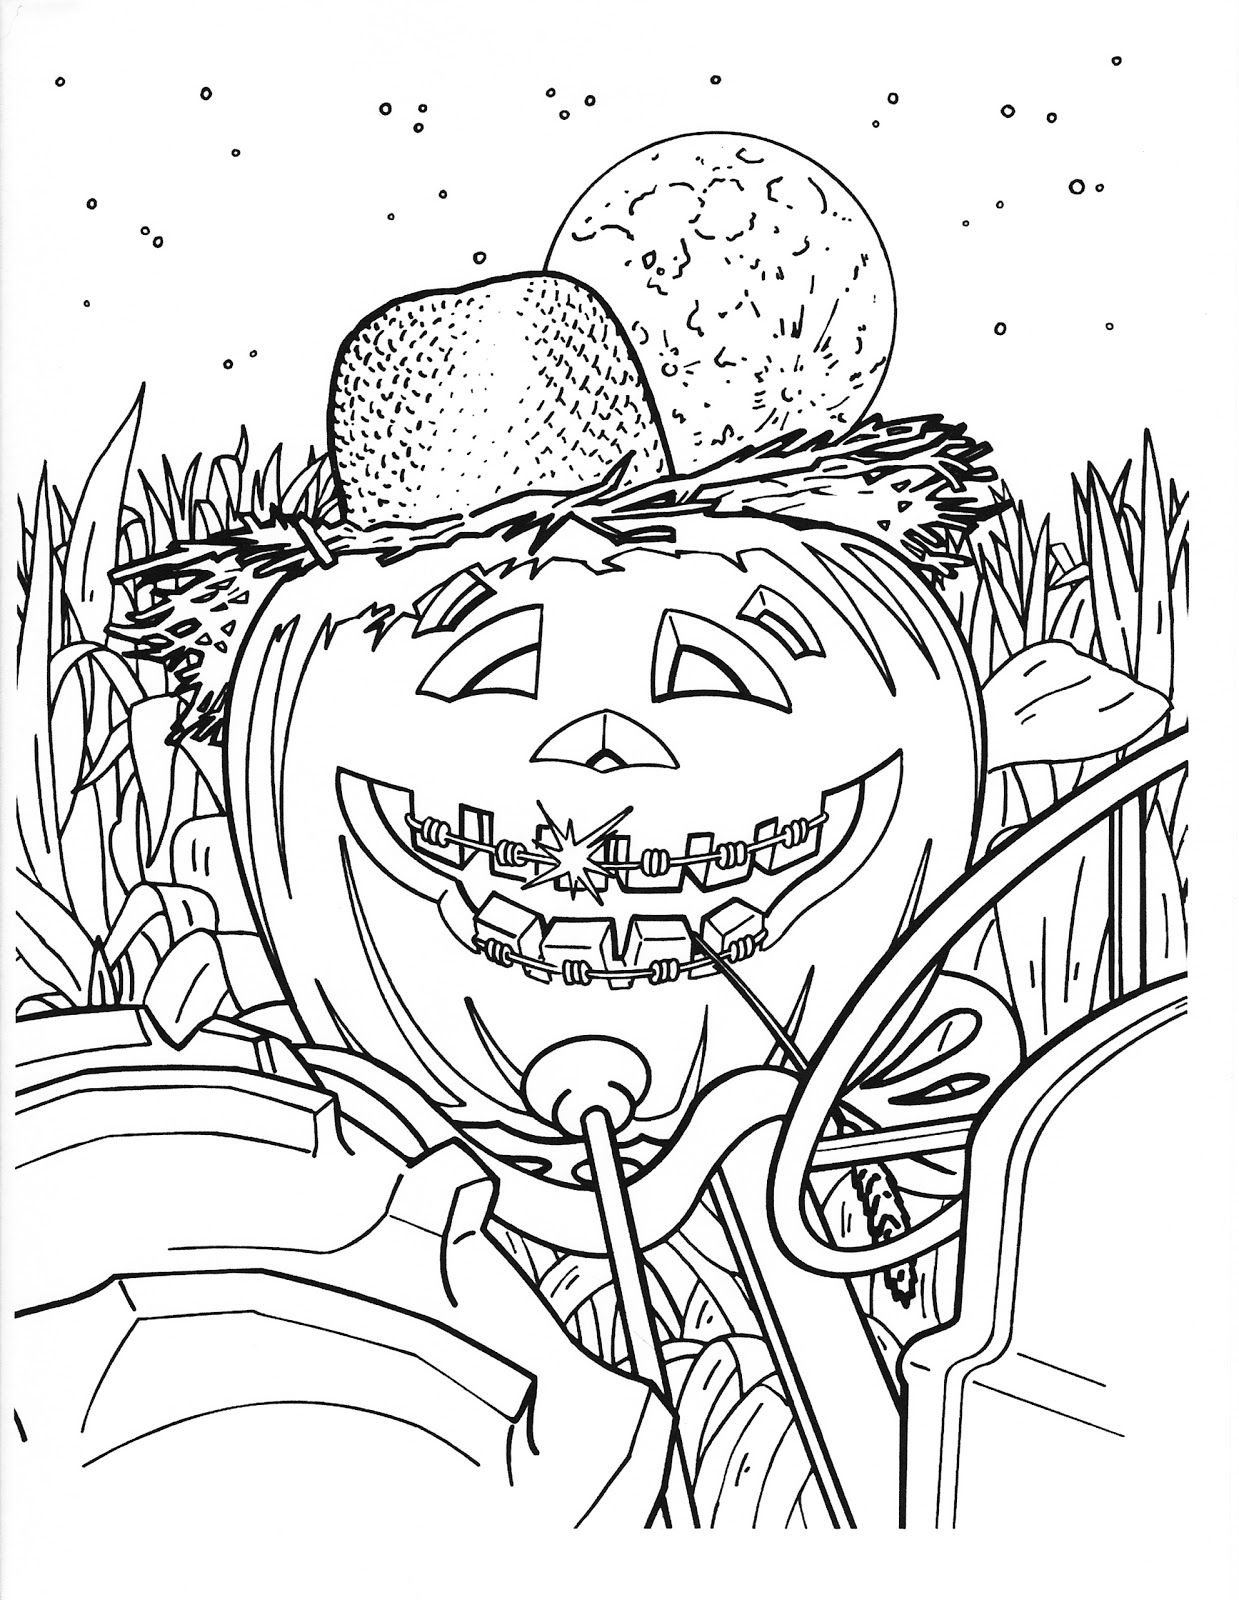 Announcing...New Fall Contests! Fall coloring pages